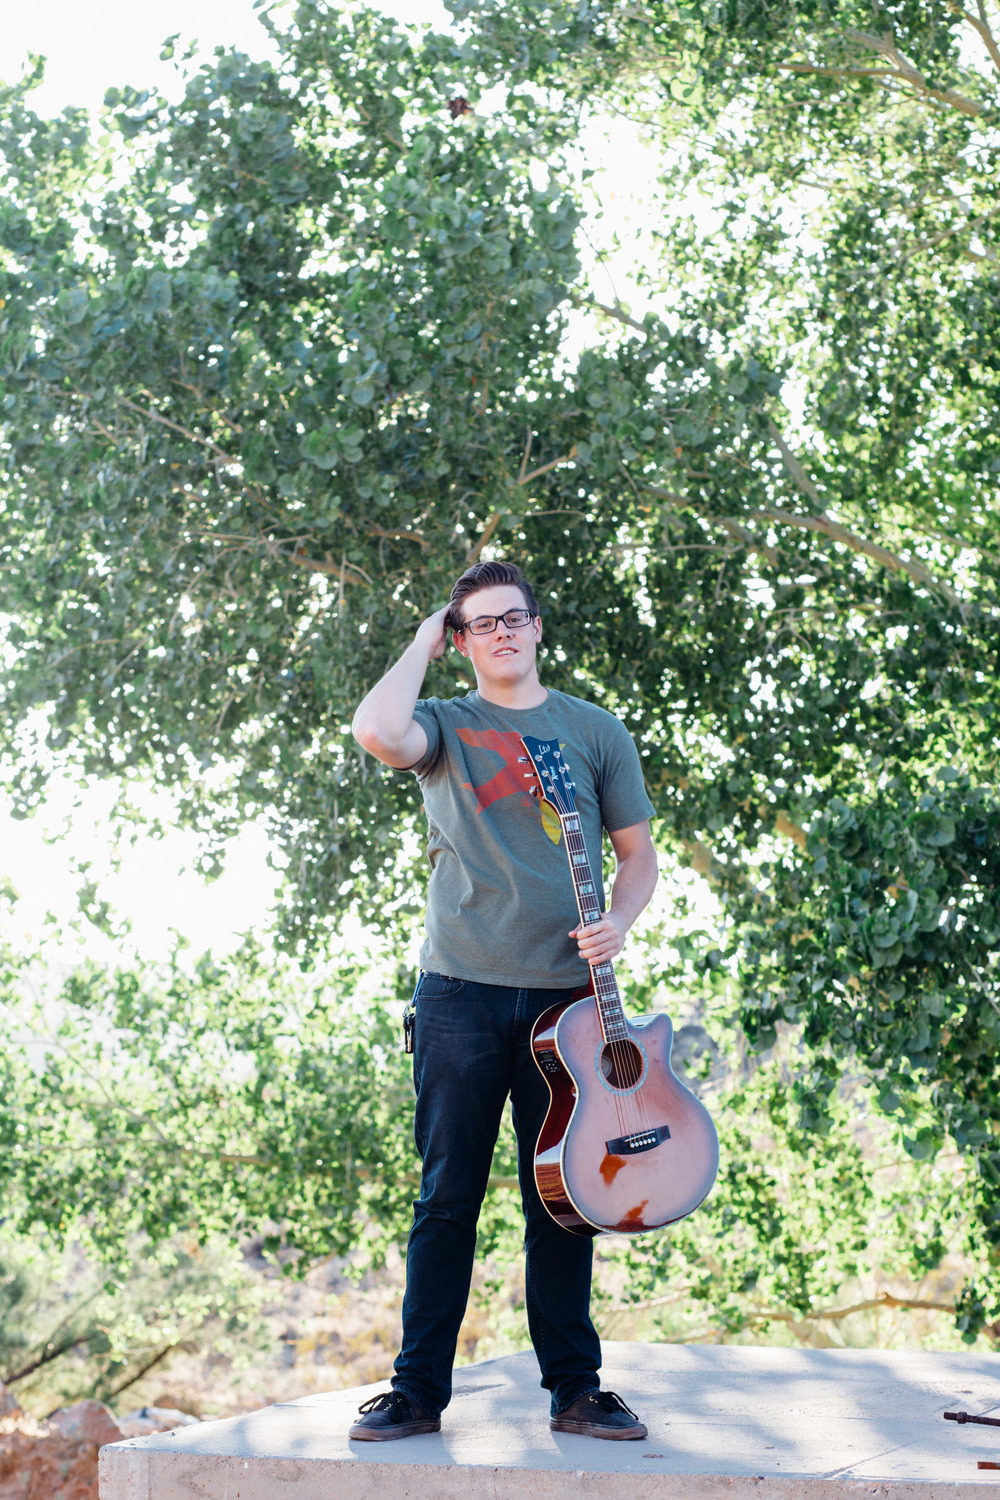 Musician singer songwriter portrait album photographer